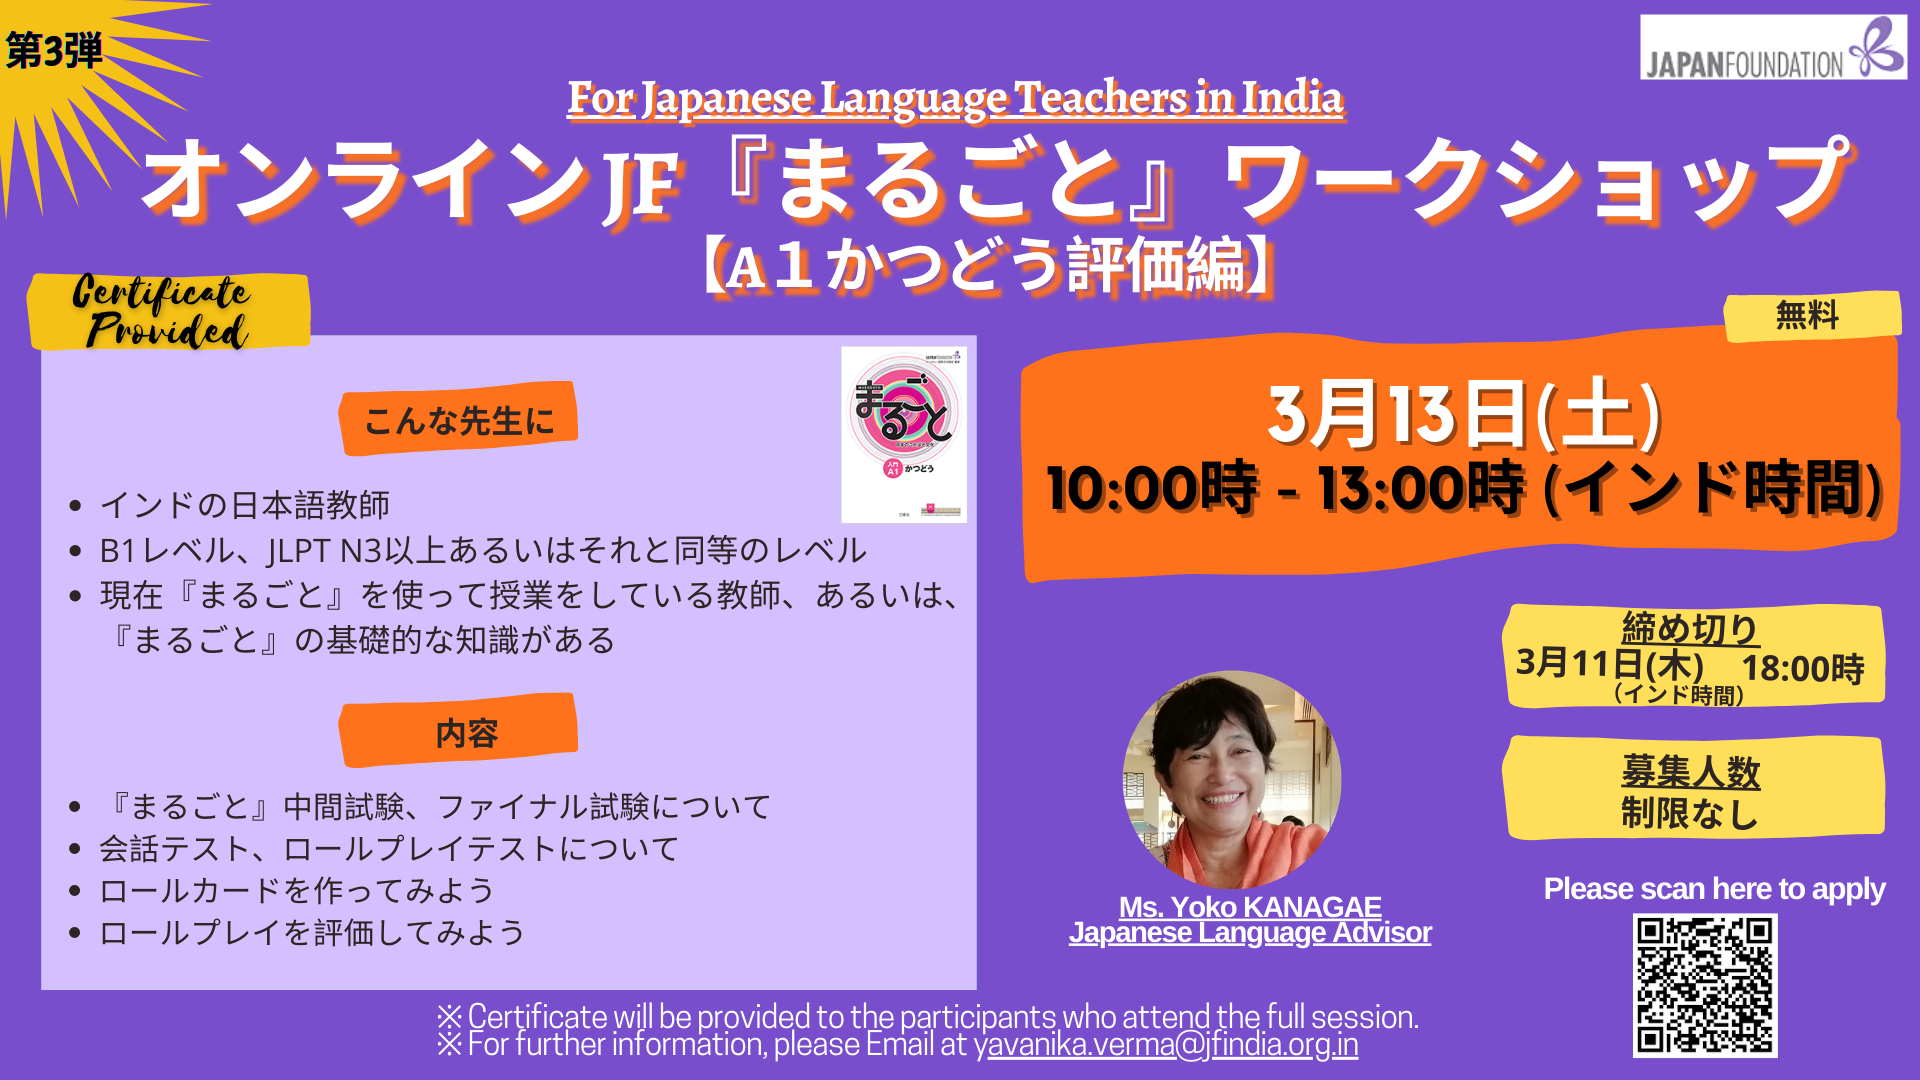 Online JF 'Marugoto Workshop' ~Japanese Language Teachers in India only